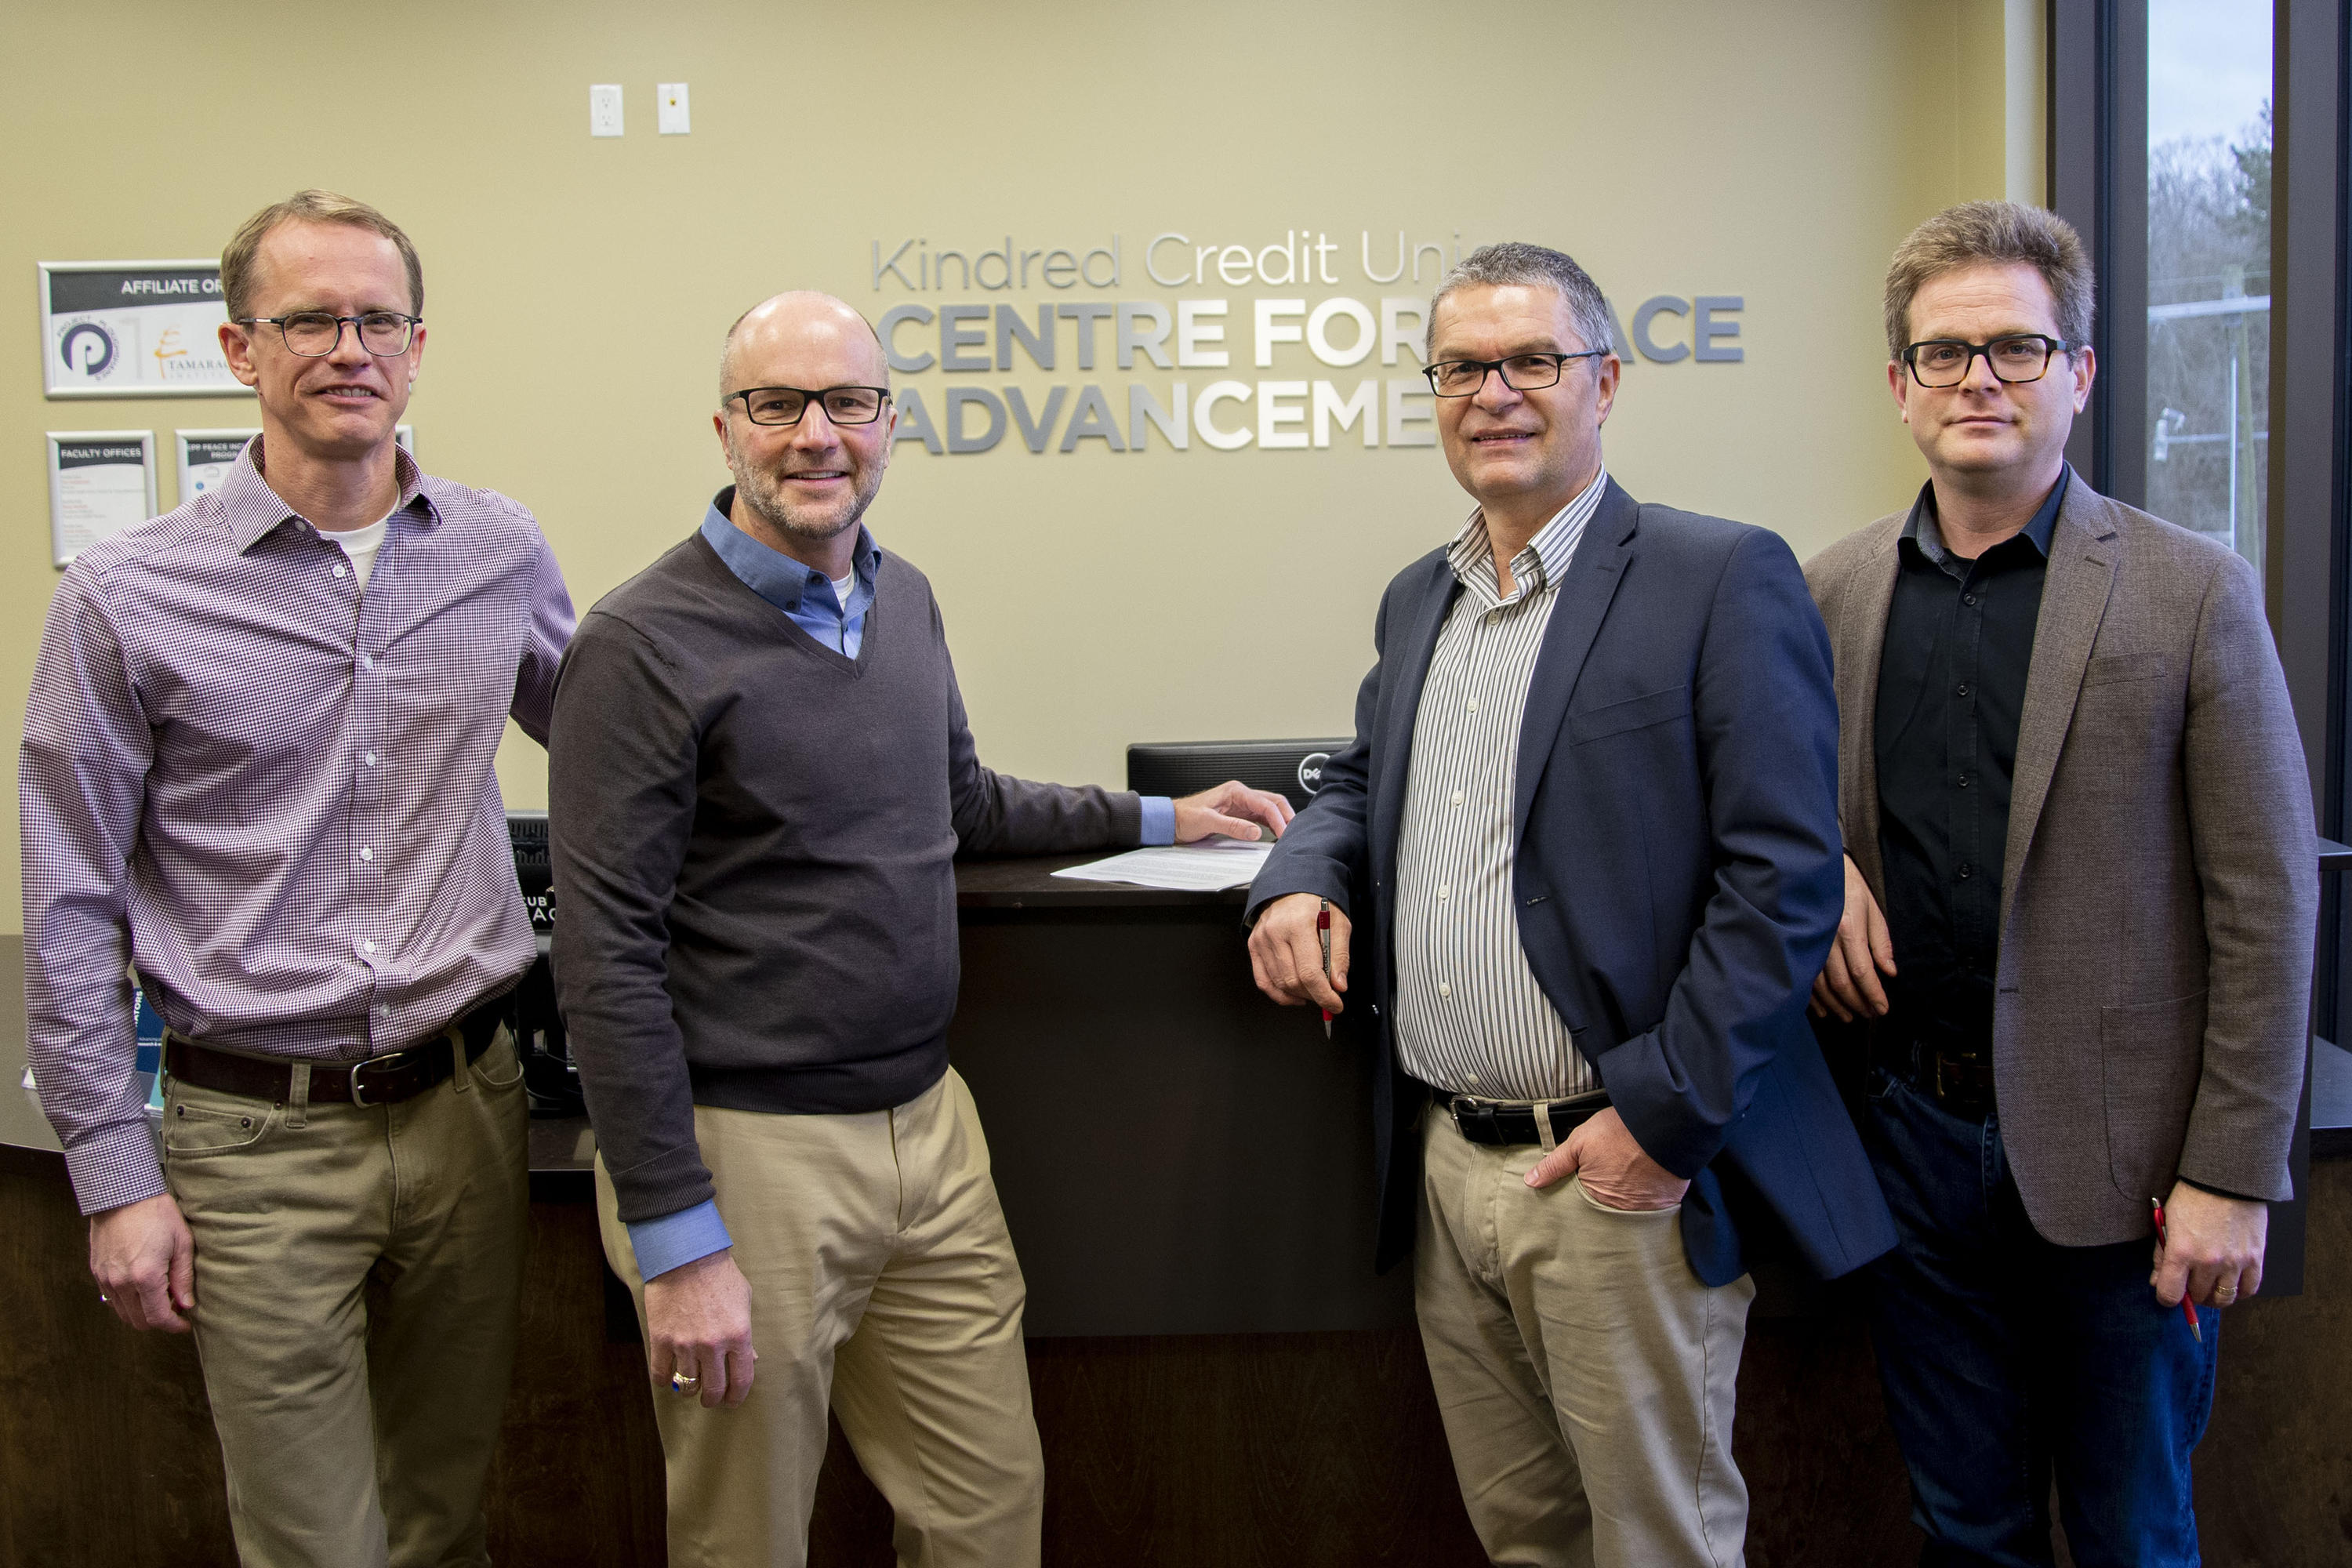 Paul Heidebrecht, John Head, Rick Cober Bauman, and Marcus Shantz pose with signed Memorandum of Understanding